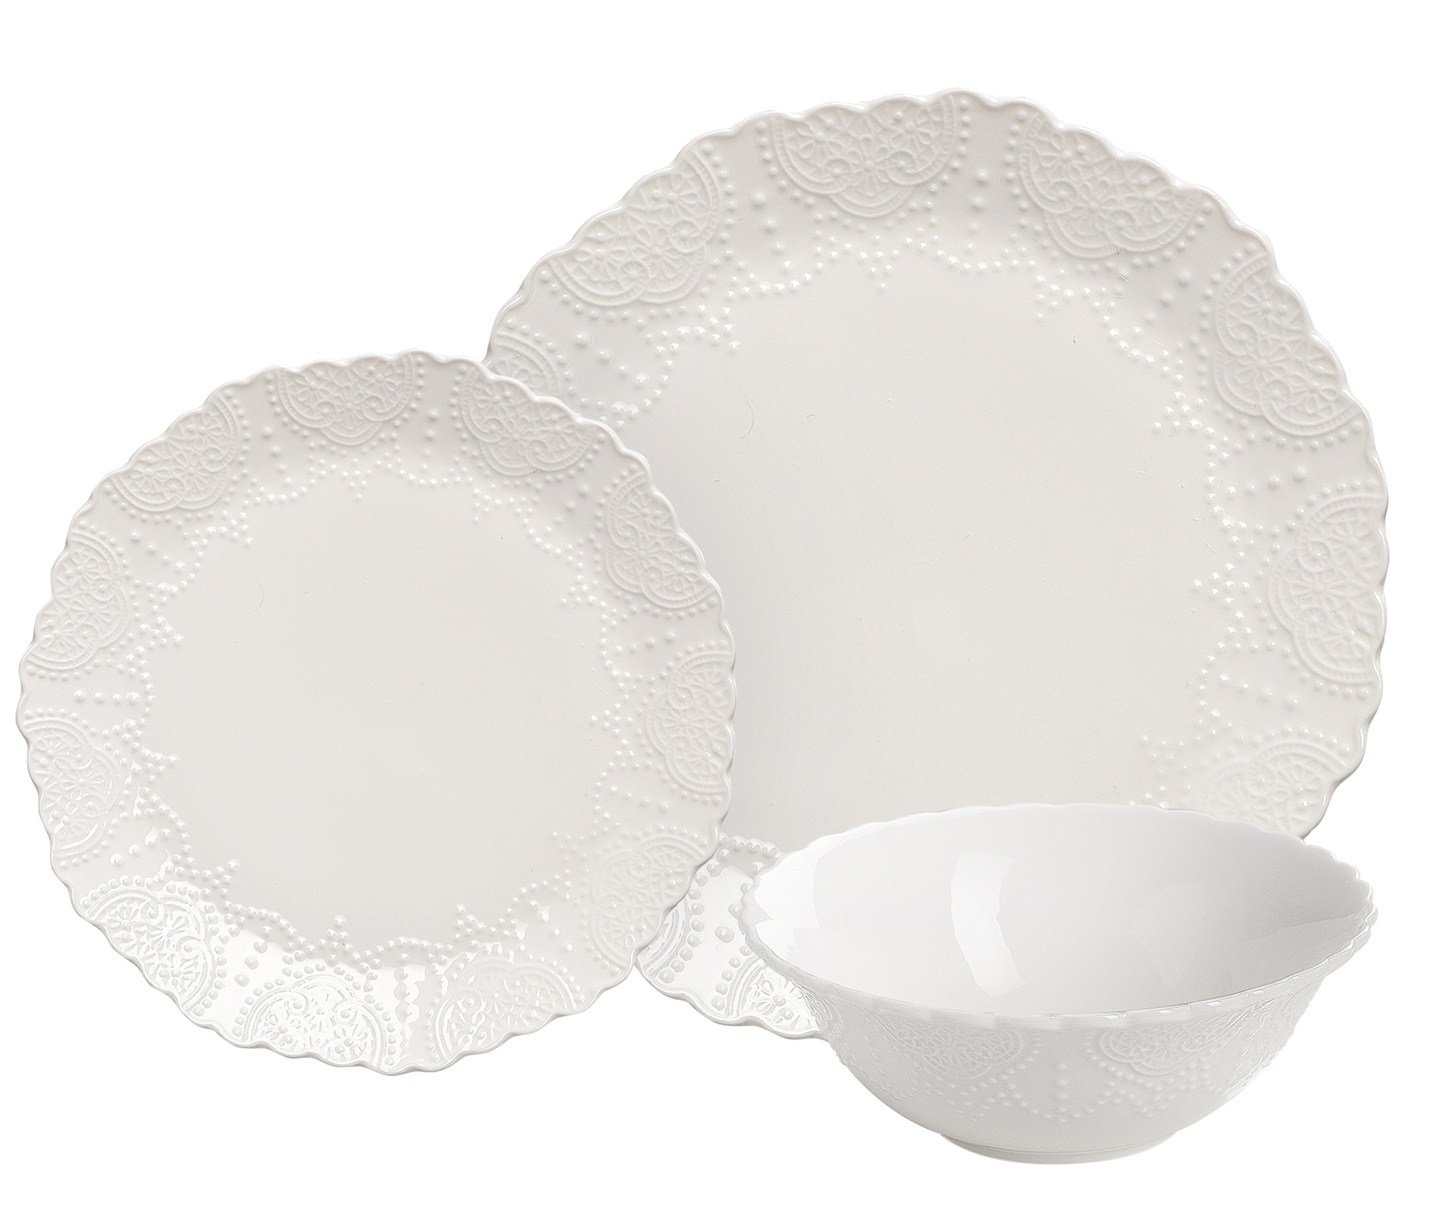 Dinnerware Set Service for 2, Scalloped Embossed Bone China, 6 Piece White Porcelain, Kitchen Gift LA JOLIE MUSE